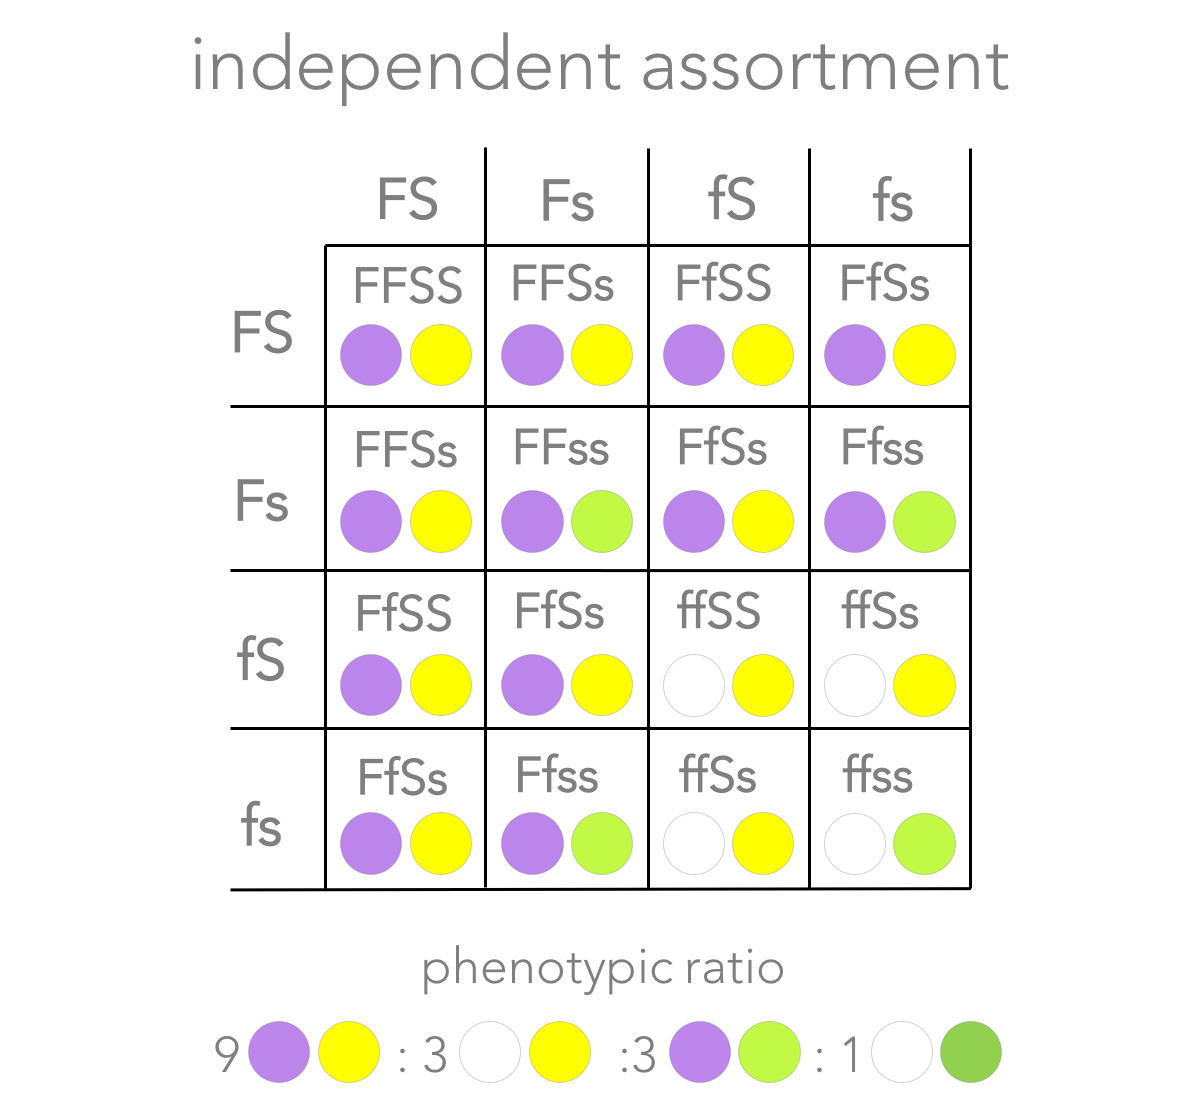 Figure 9. Prediction of  independent assortment.  Independent assortment predicts the alleles are  not  physically linked. All combinations are possible:  FS, Fs, fS, and  fs. When a dihybrid cross is conducted, independent assortment predicts offspring with a phenotypic ratio of 9 purple-flower/yellow-seed: 3 purple-flower/green-seed: 9 white-flower/yellow-seed: 1 white-flower/green-seed.